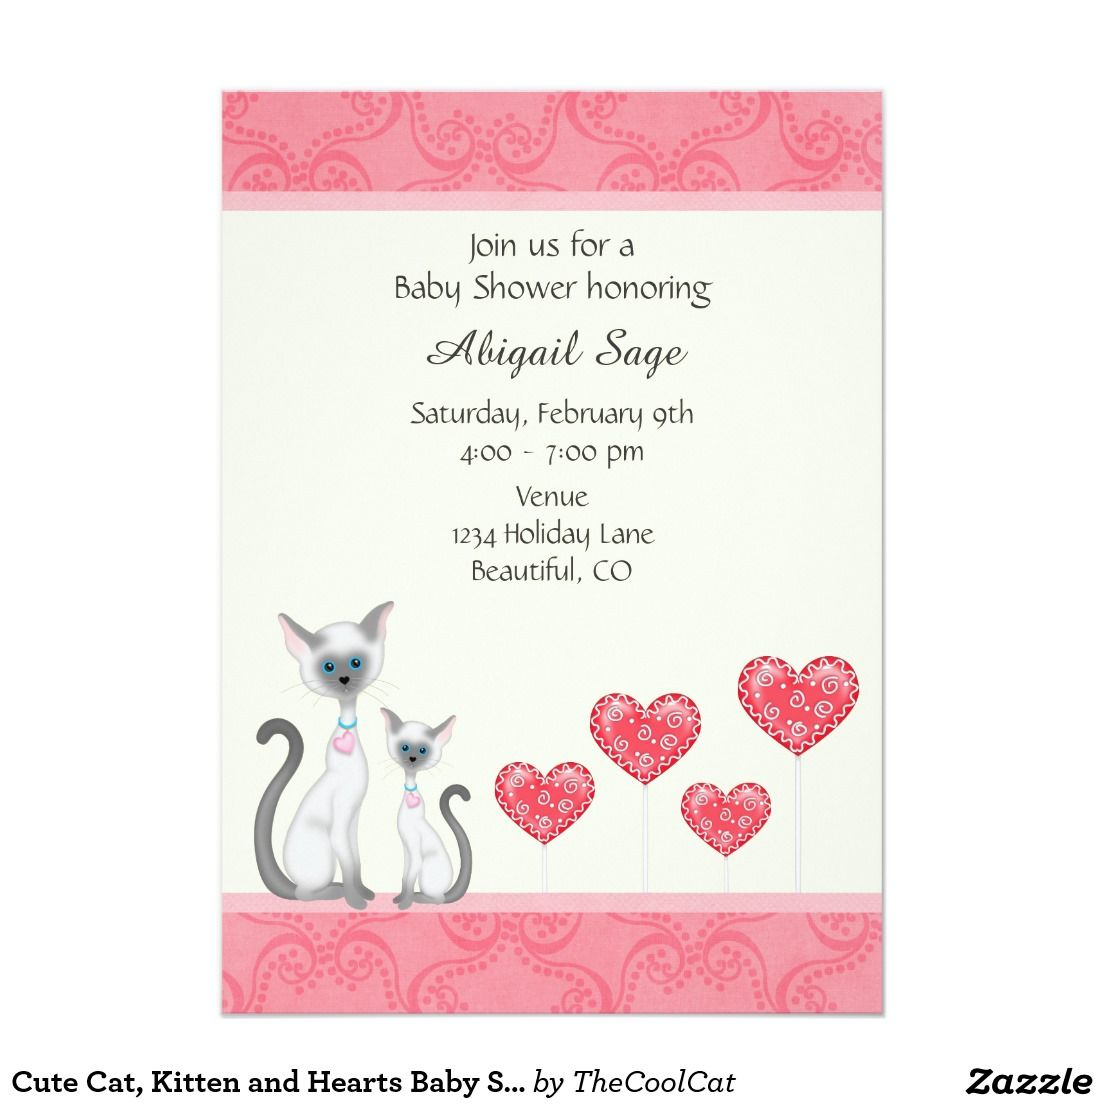 Cute Cat Kitten And Hearts Baby Shower Invitation  Baby Shower